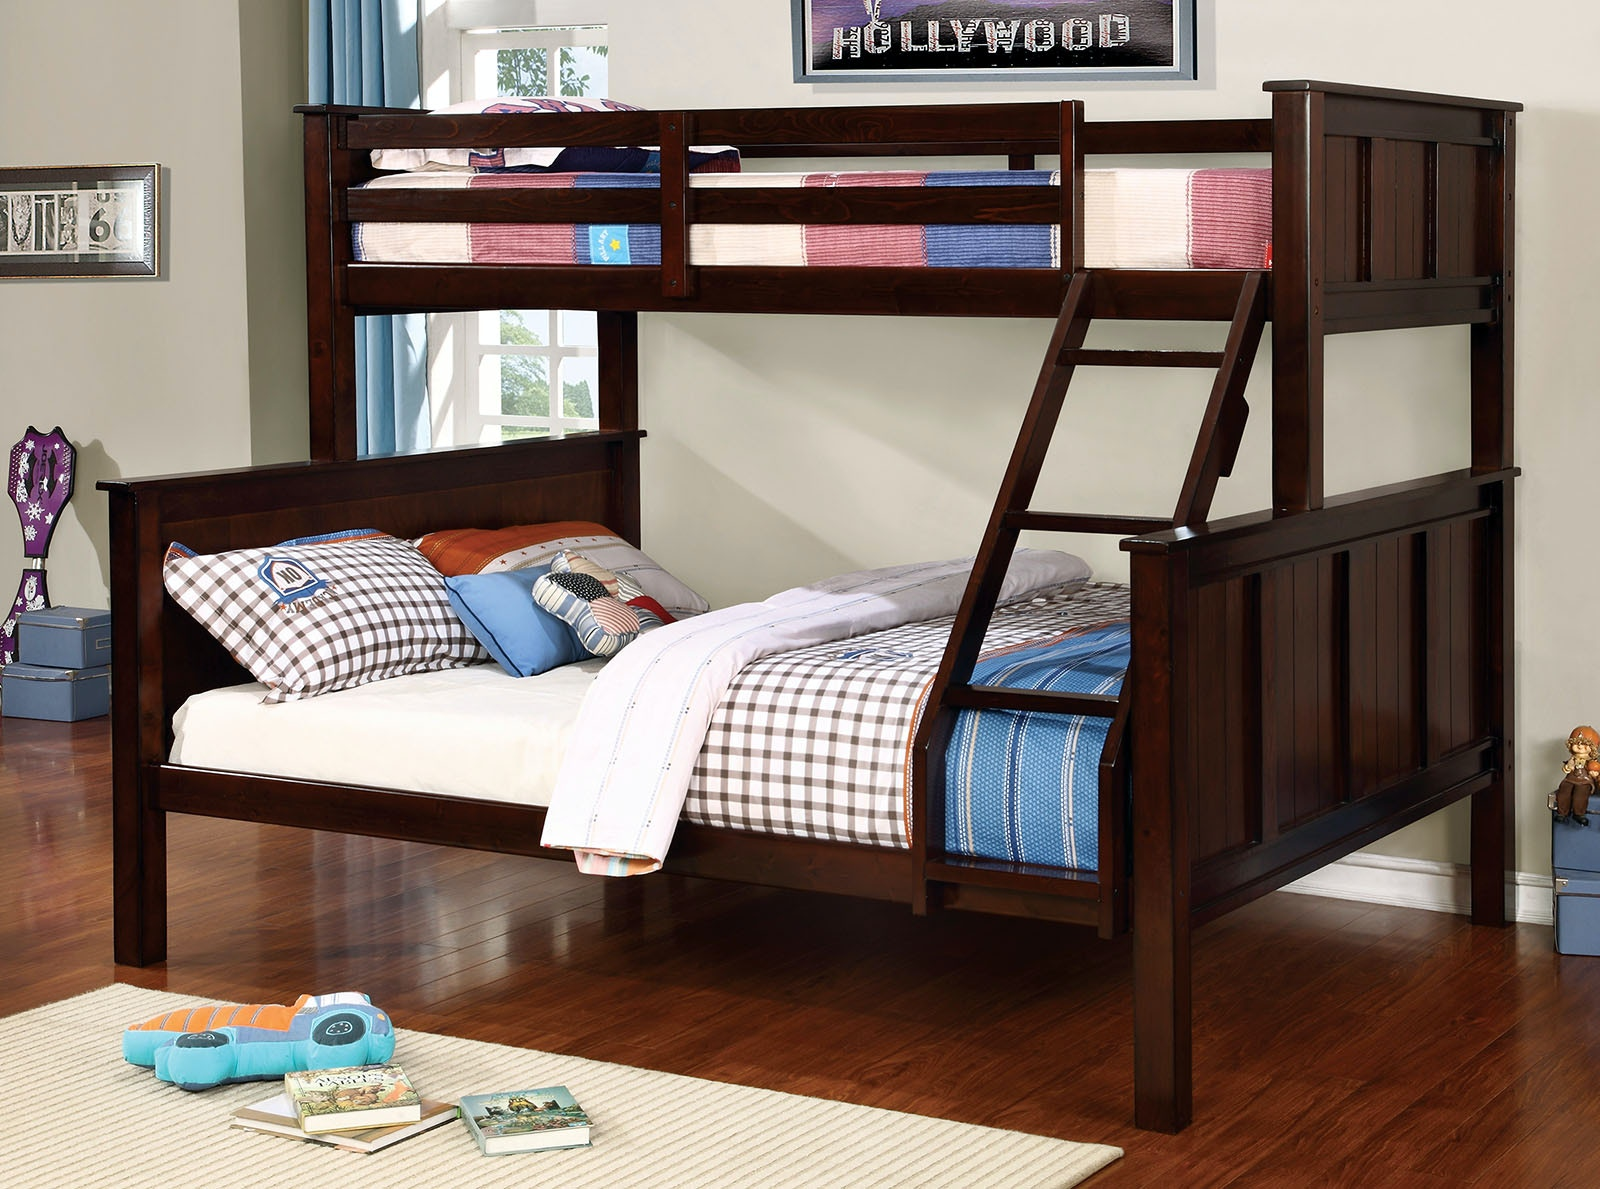 Furniture Of America Bedroom Twin Queen Bunk Bed Top Headboard